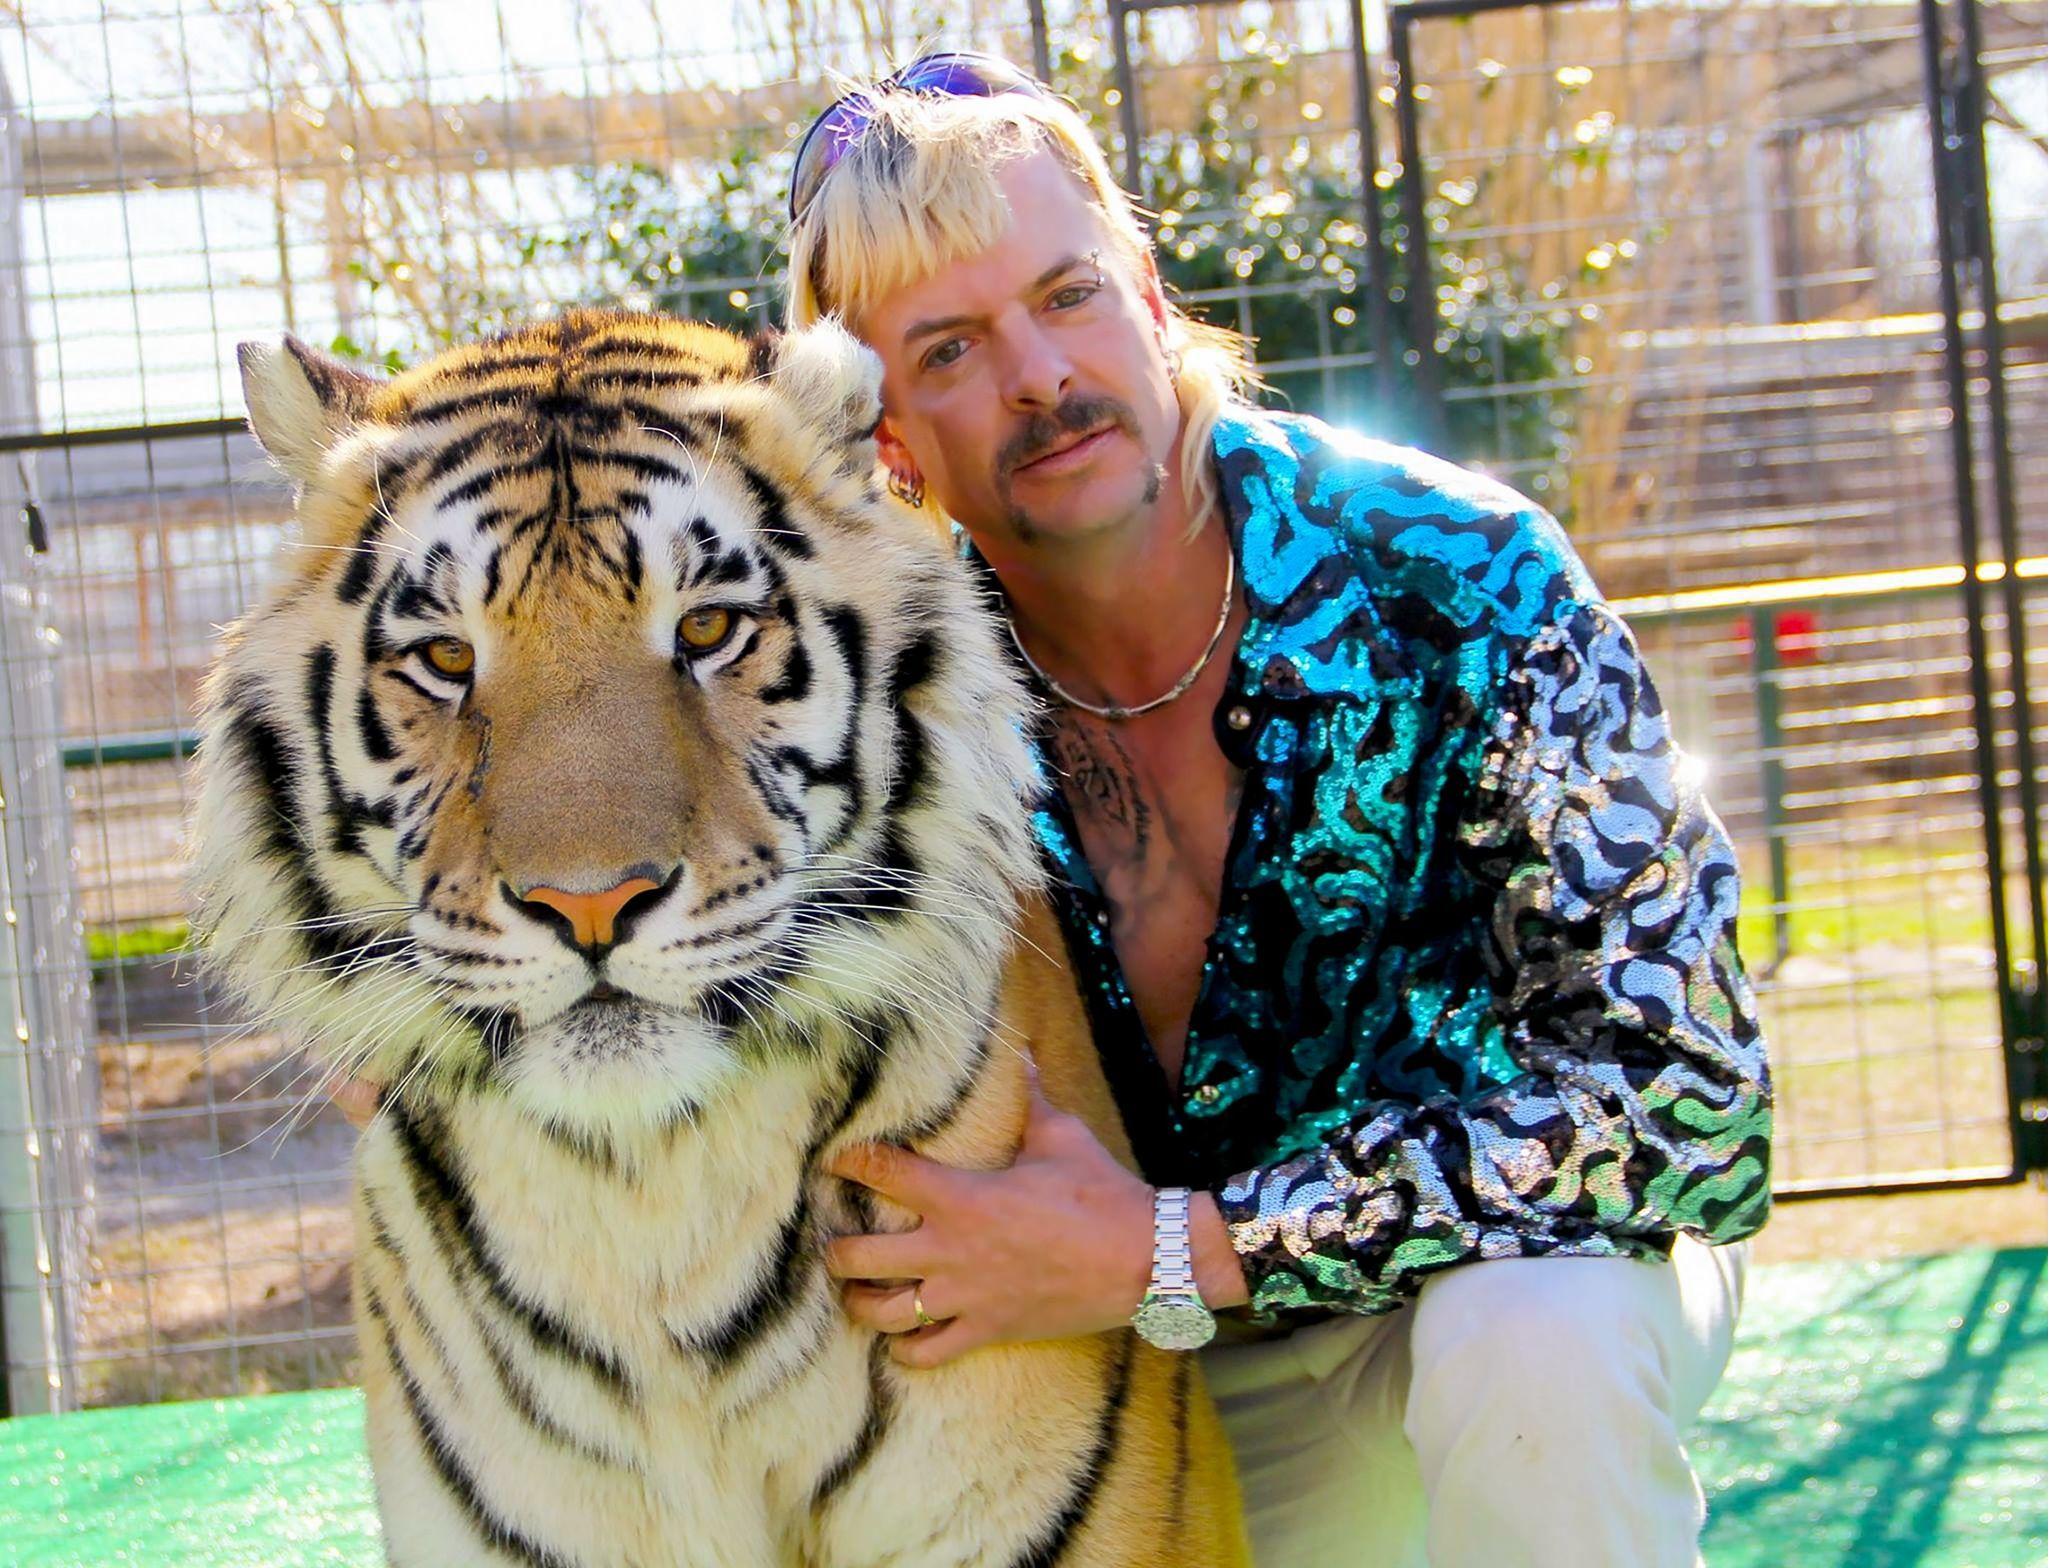 'Tiger King' has another episode on the way, Jeff Lowe says